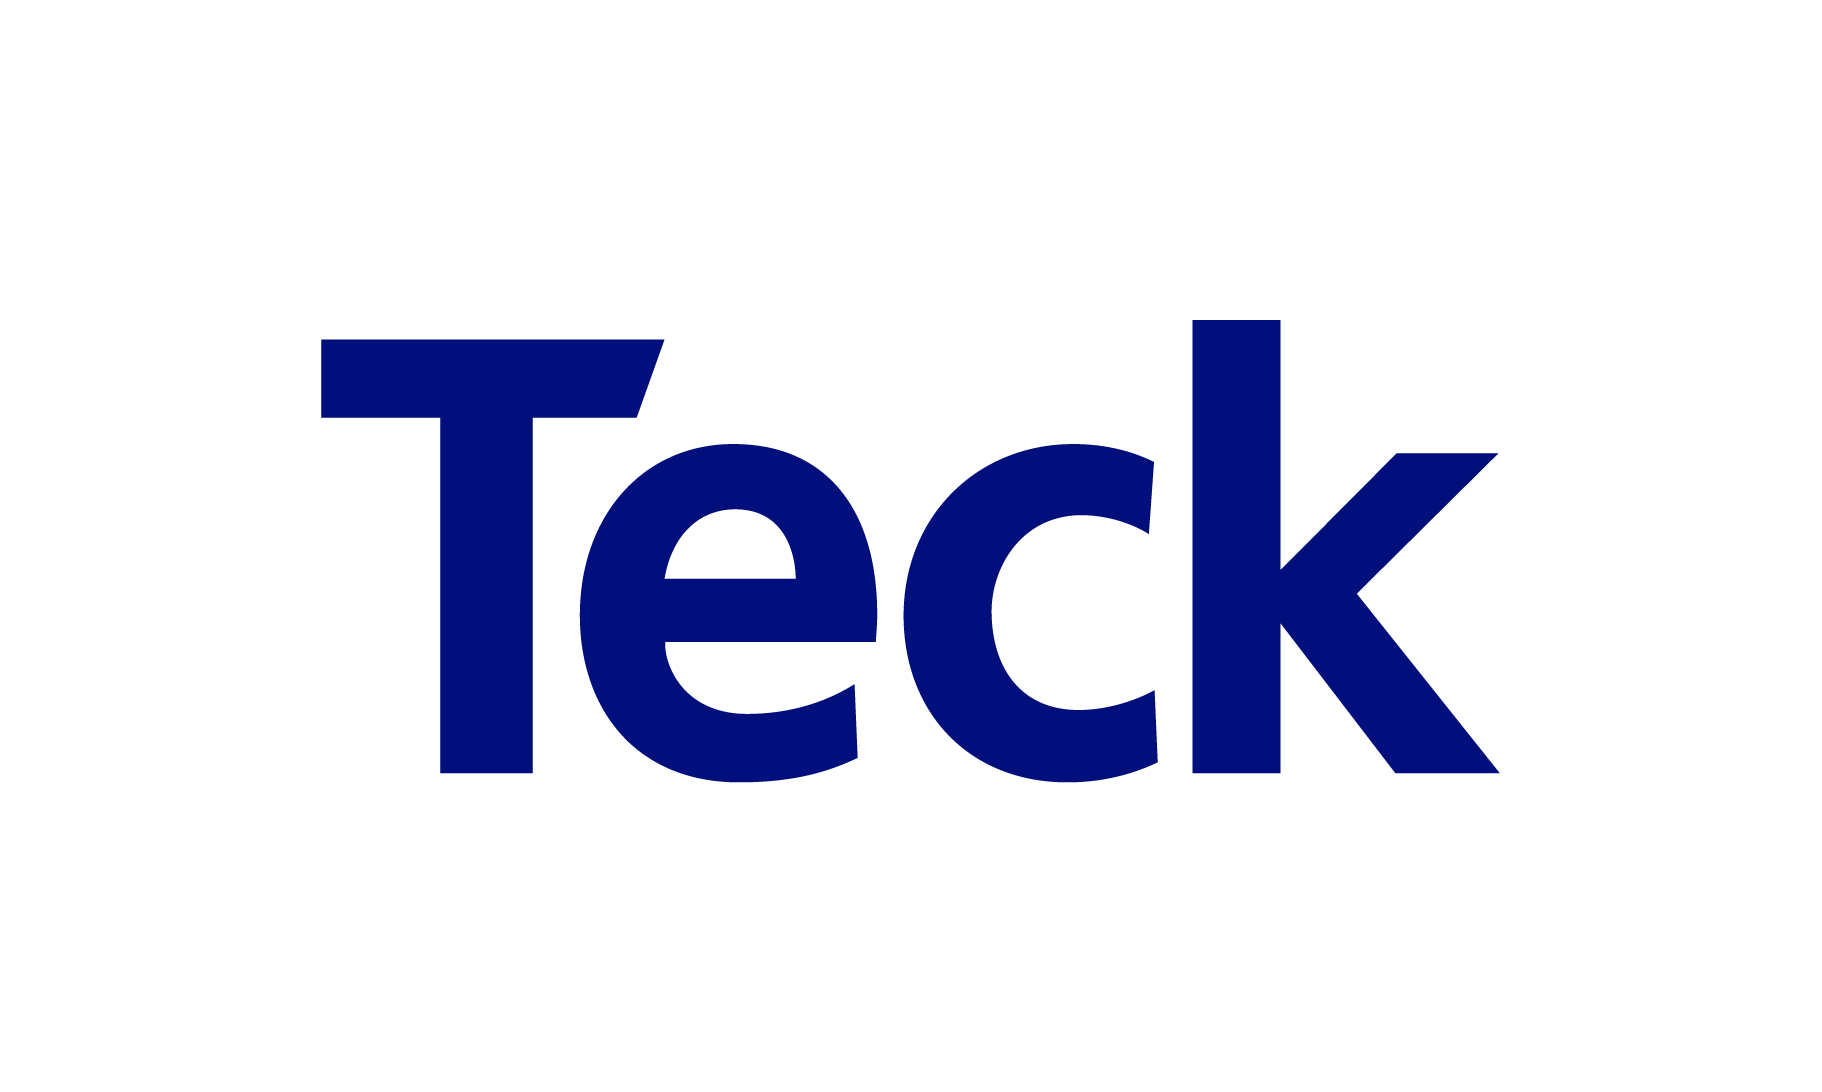 Teck Announces Q1 2020 Update